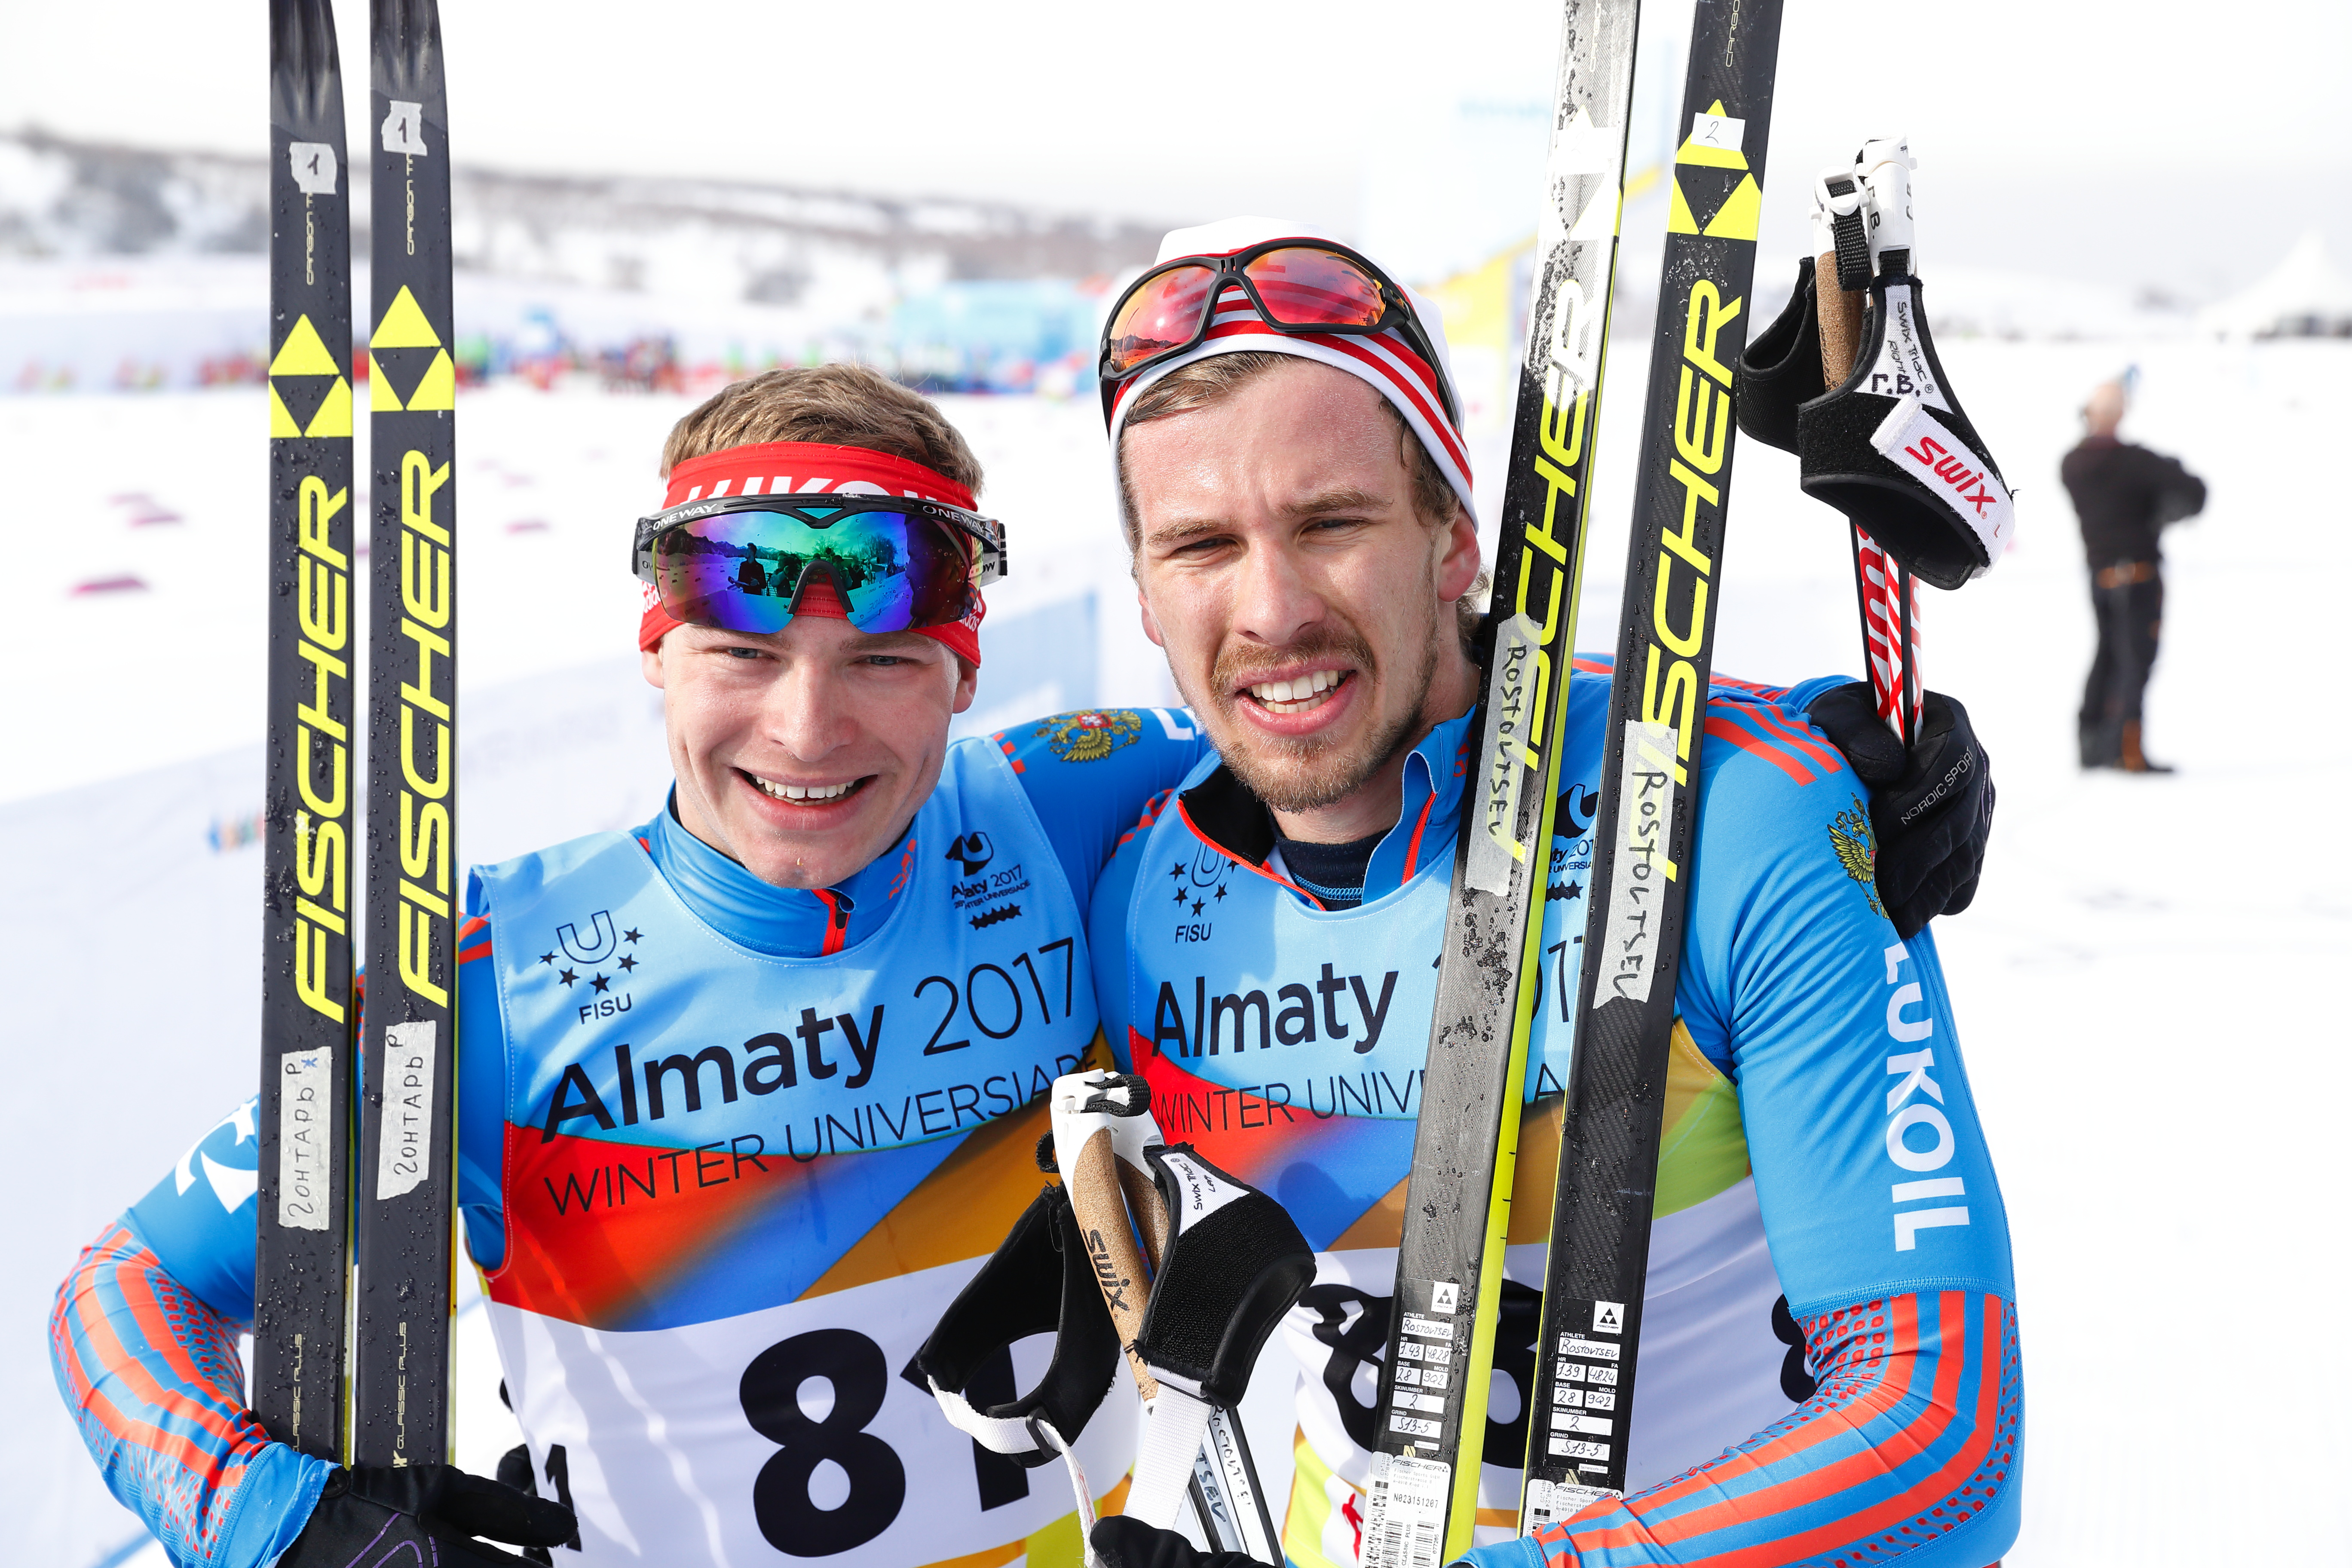 Skier Valery Gontar (left) wins gold medal at the  2017 Winter Universiade in Almaty.